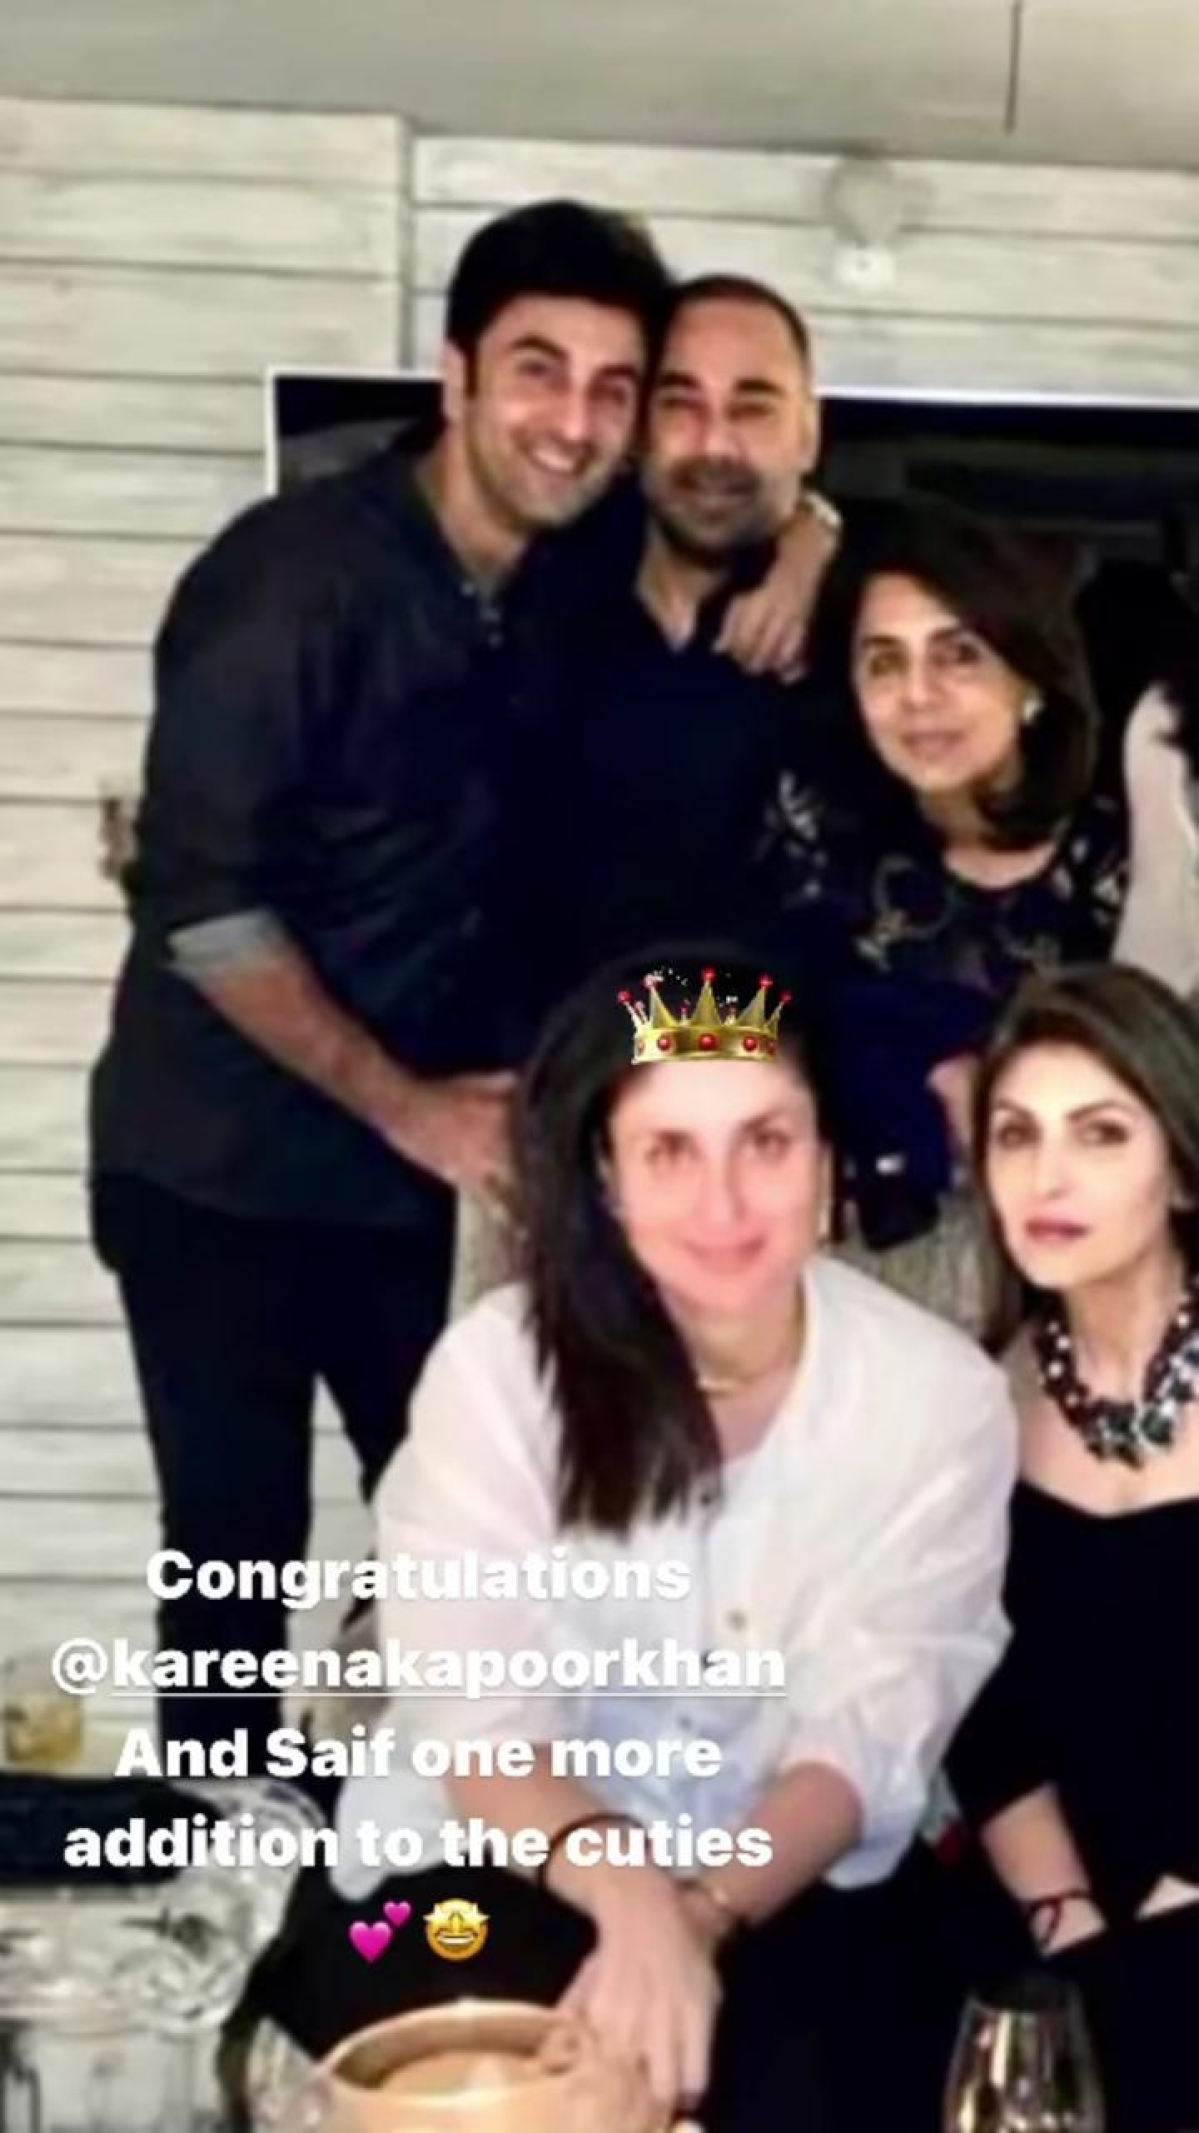 Alia Bhatt wishes Kareena, Saif and 'little Timtim', says 'can't wait to meet your baby brother'